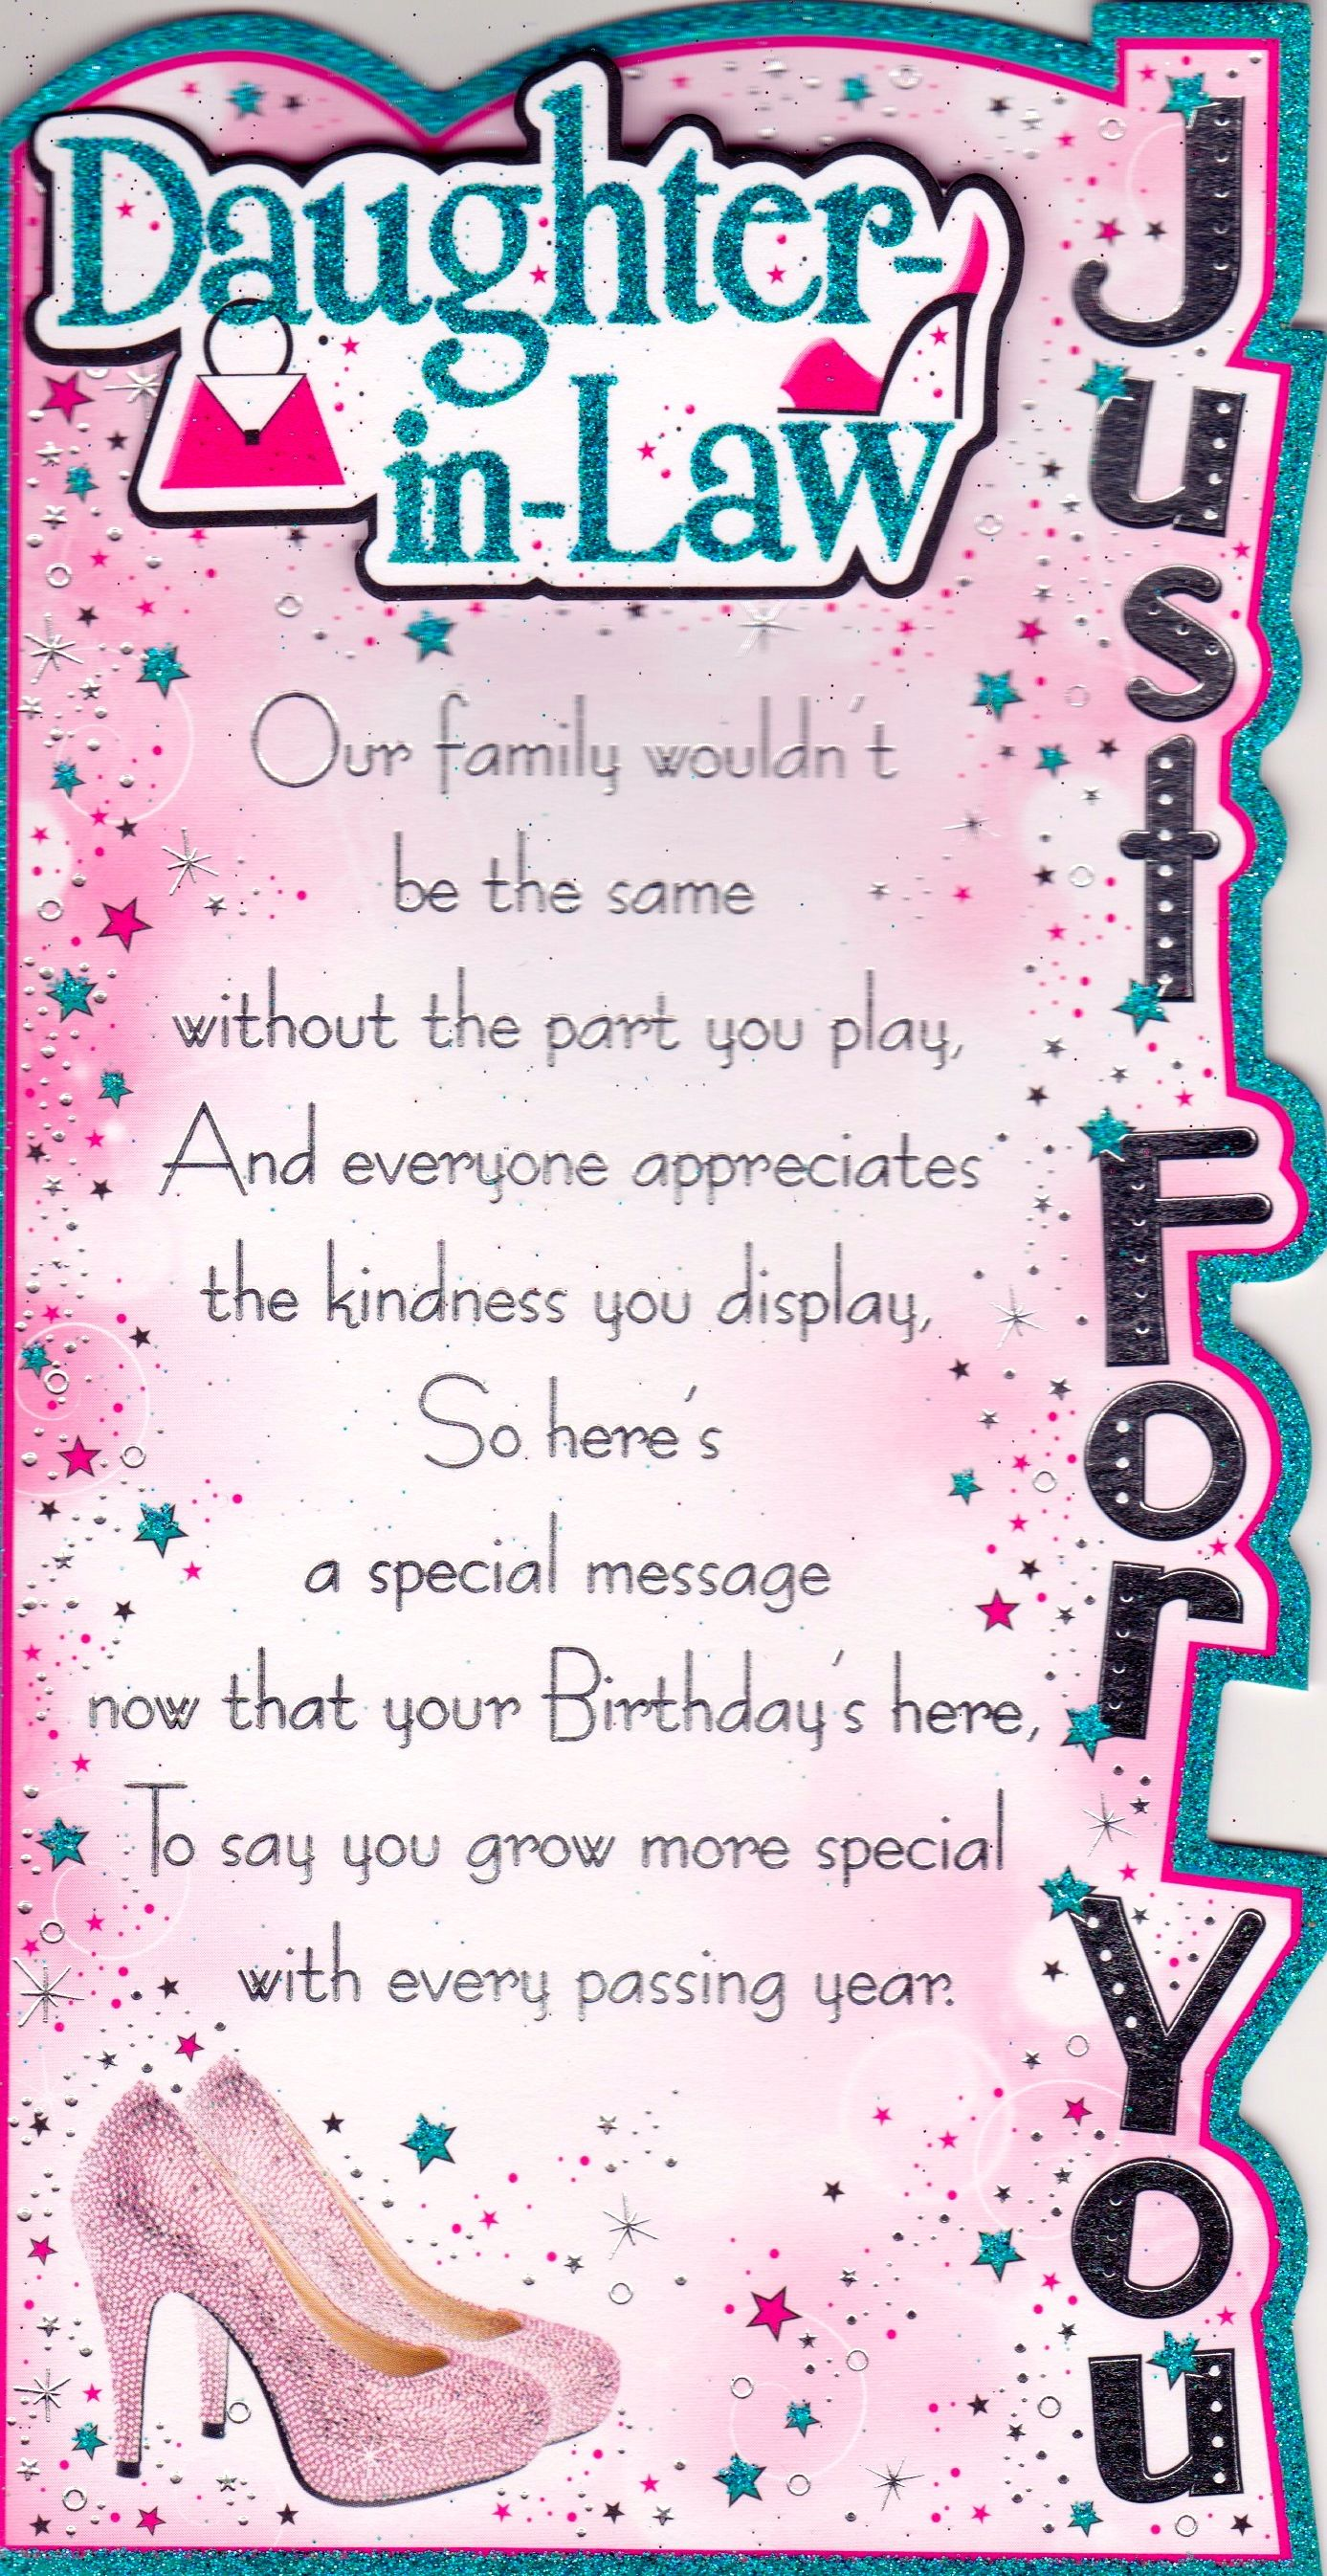 Happy birthday daughter in law birthday wishes for